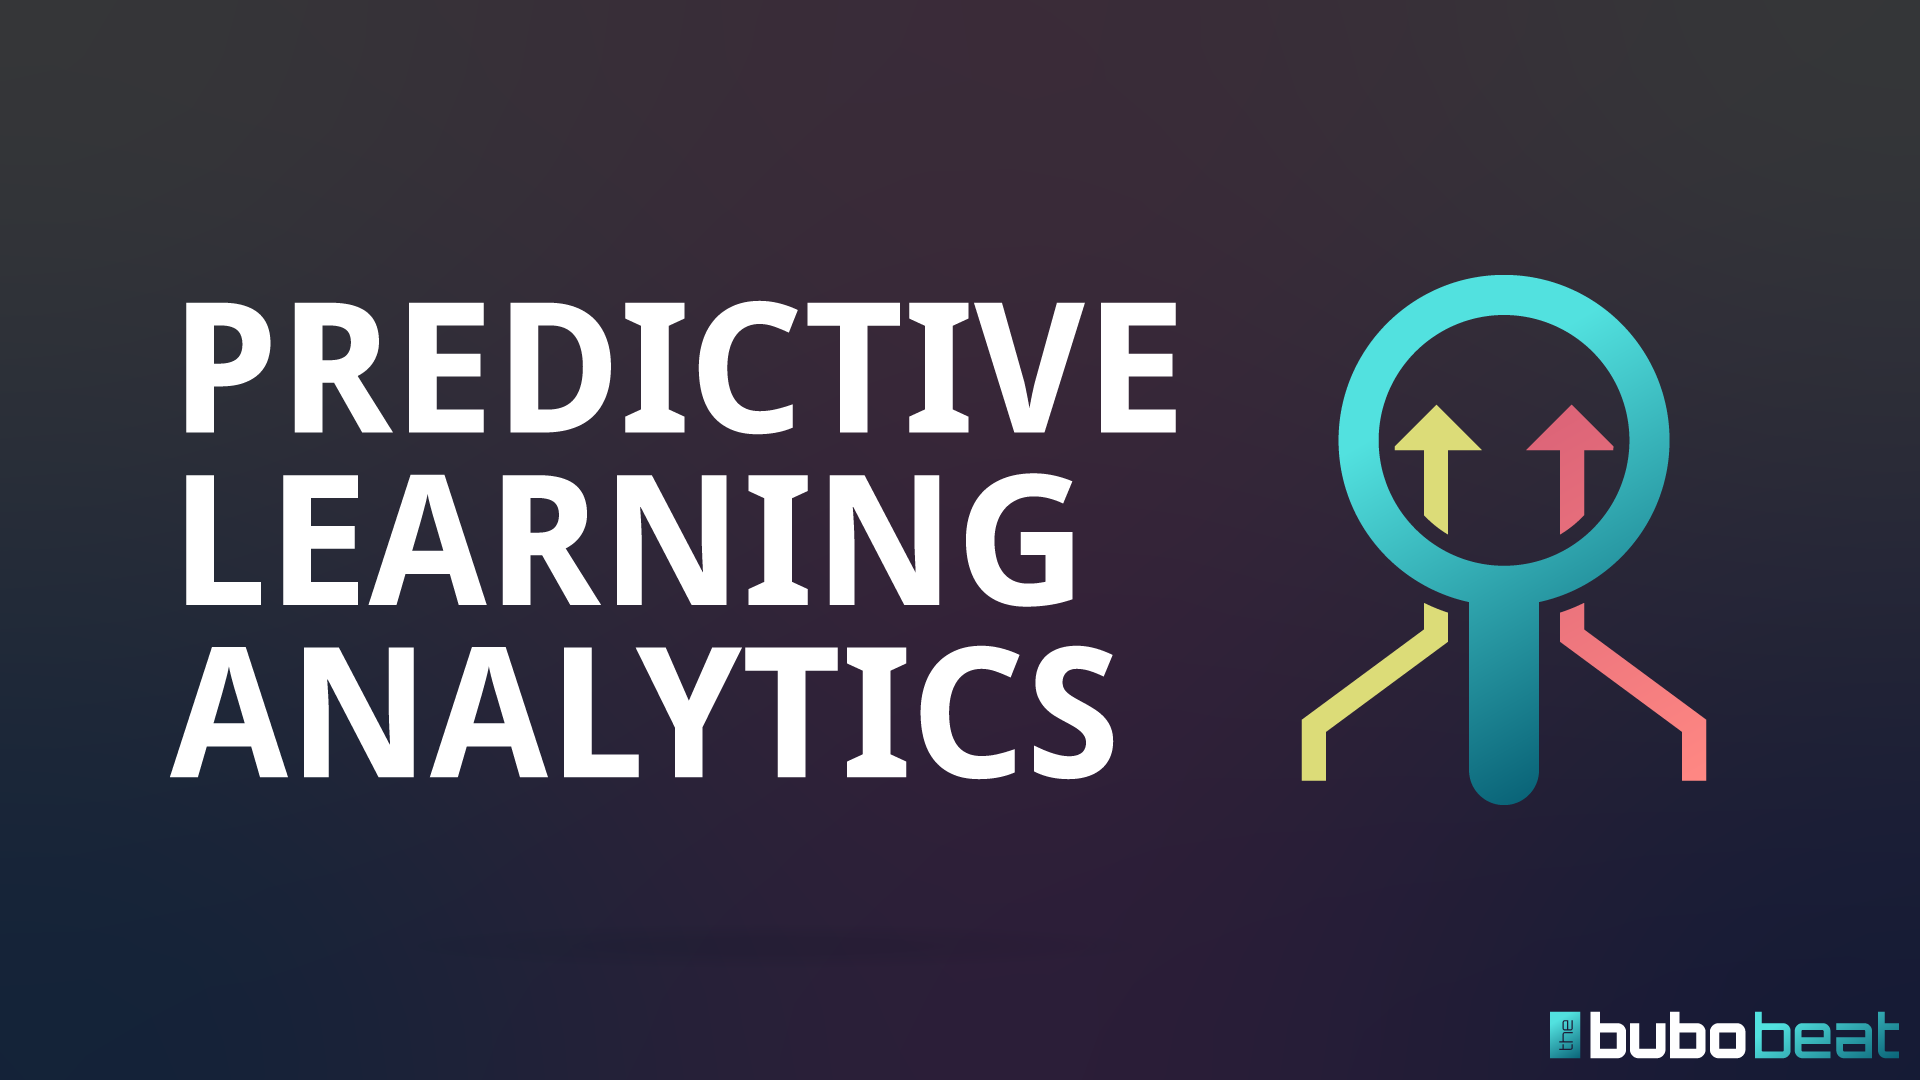 Predictive learning analytics